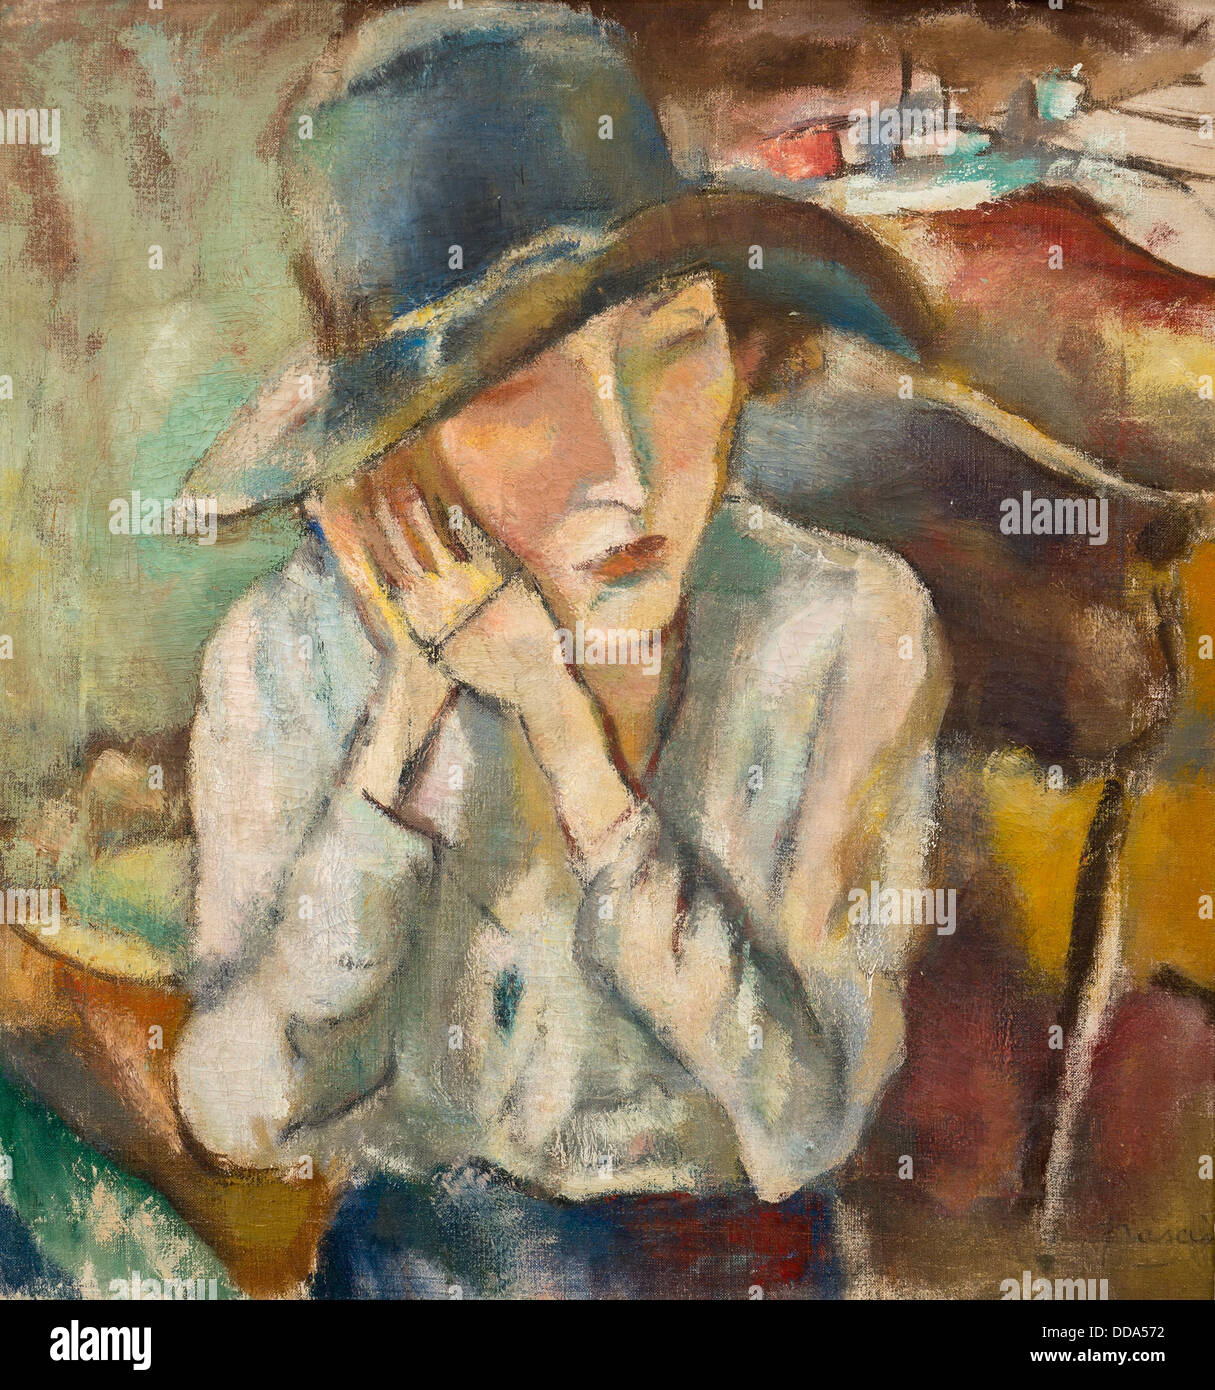 20th century  -  Hermine with Big Hat, 1917 - Pascin Philippe Sauvan-Magnet / Active Museum Oil on canvas - Stock Image